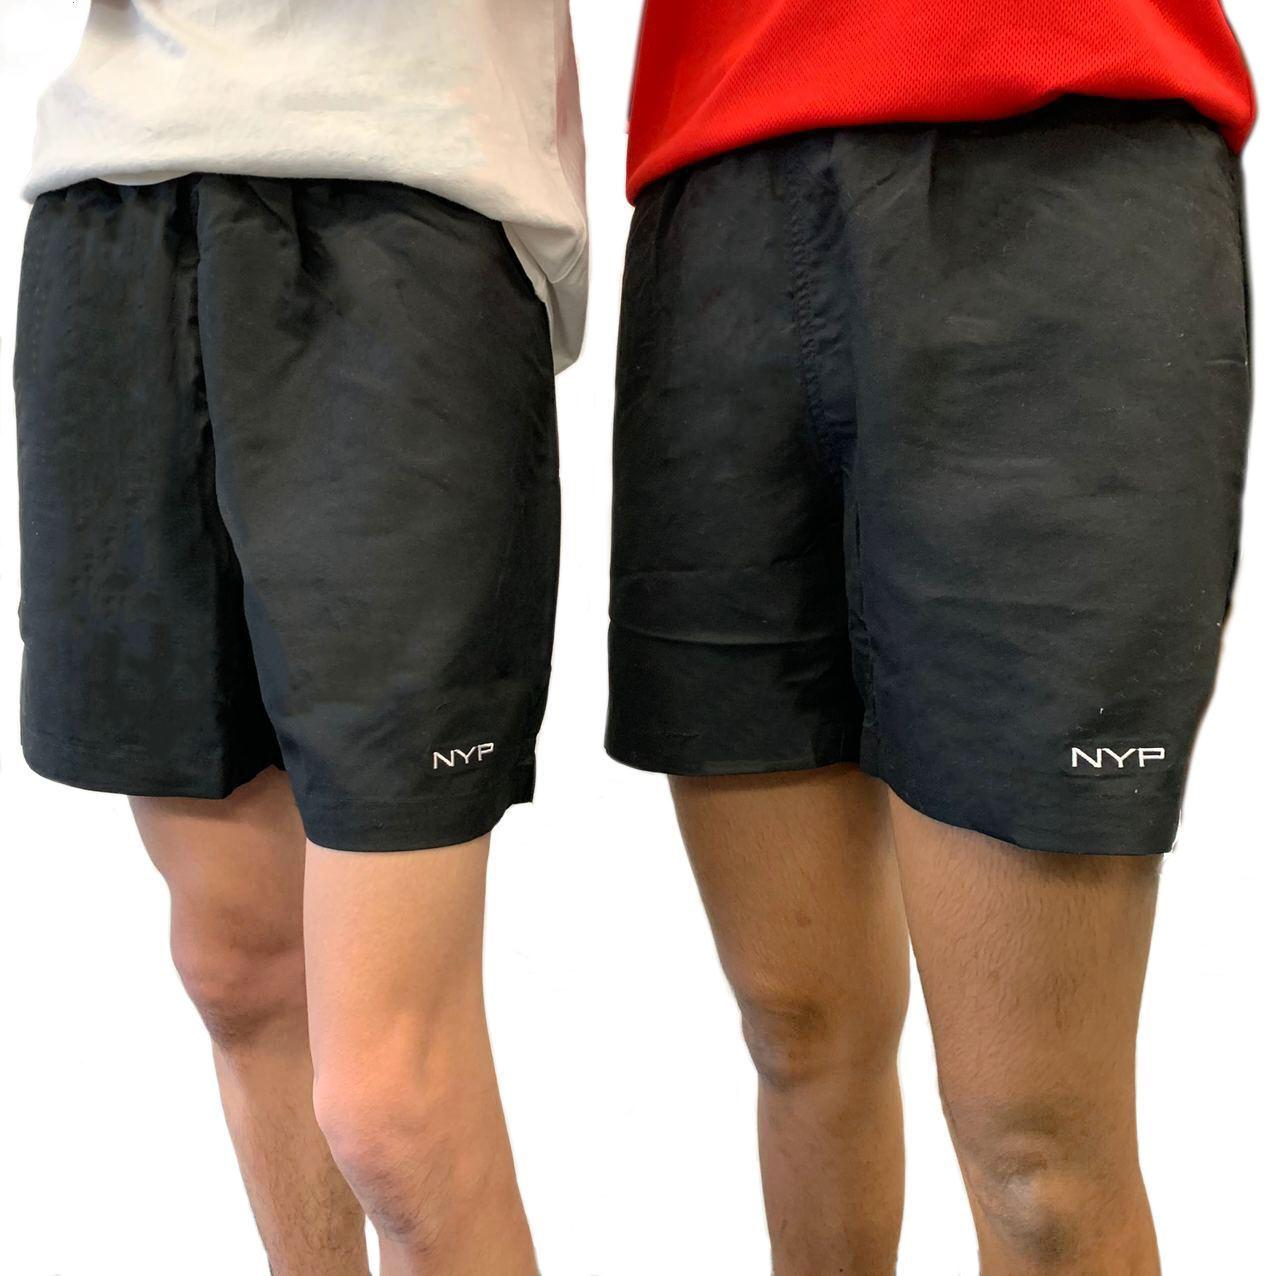 NYP Shorts (non glossy without netting)